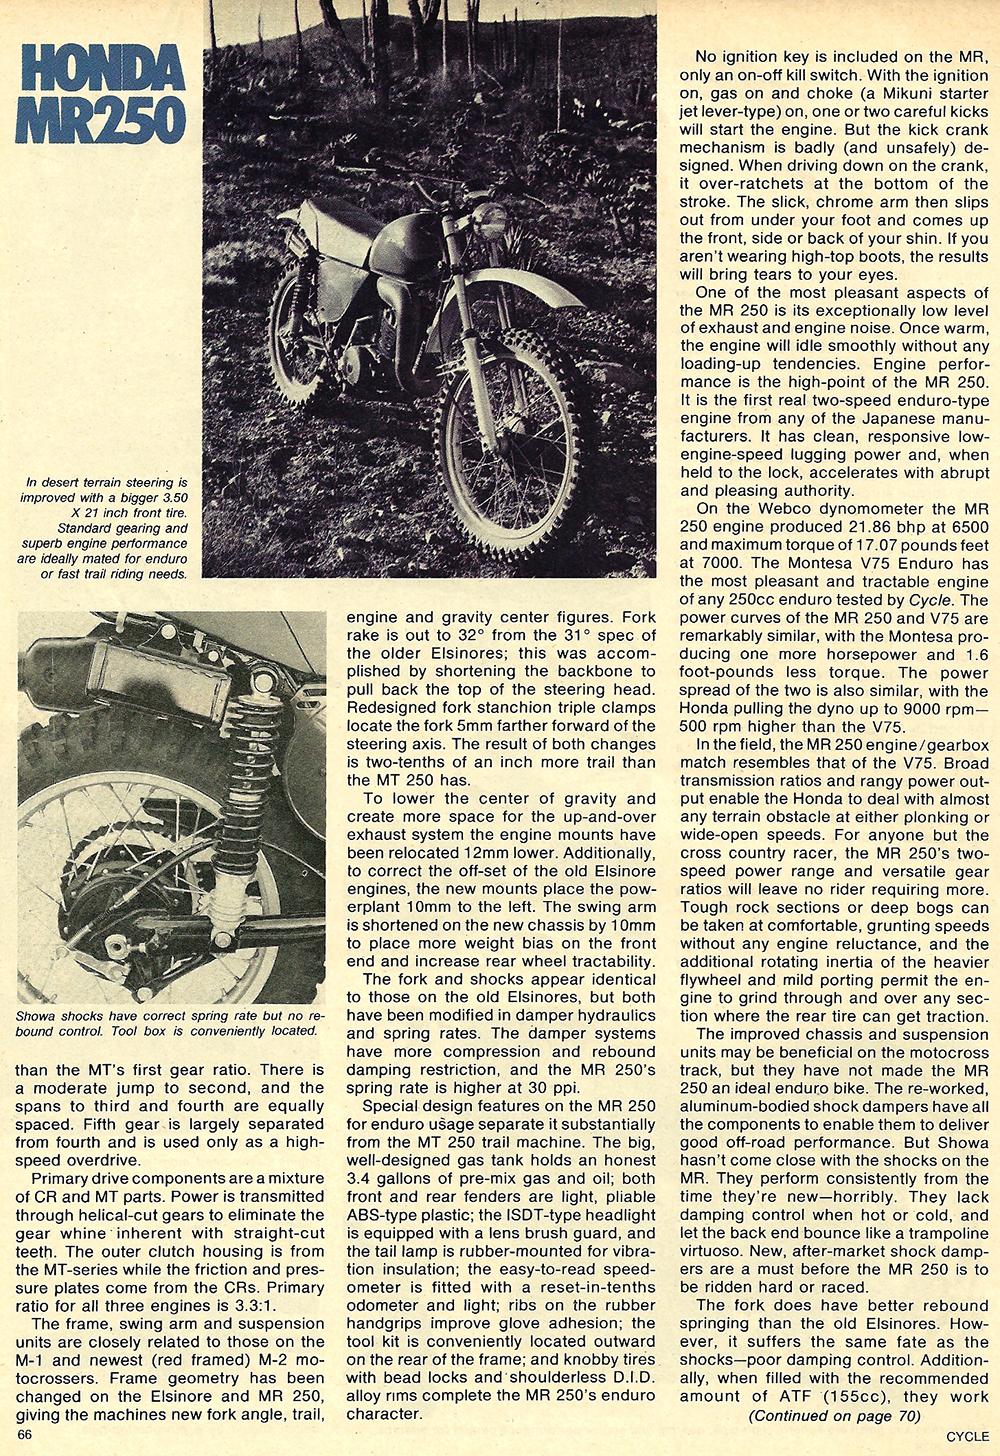 1976 Honda MR250 enduro road test 5.jpg